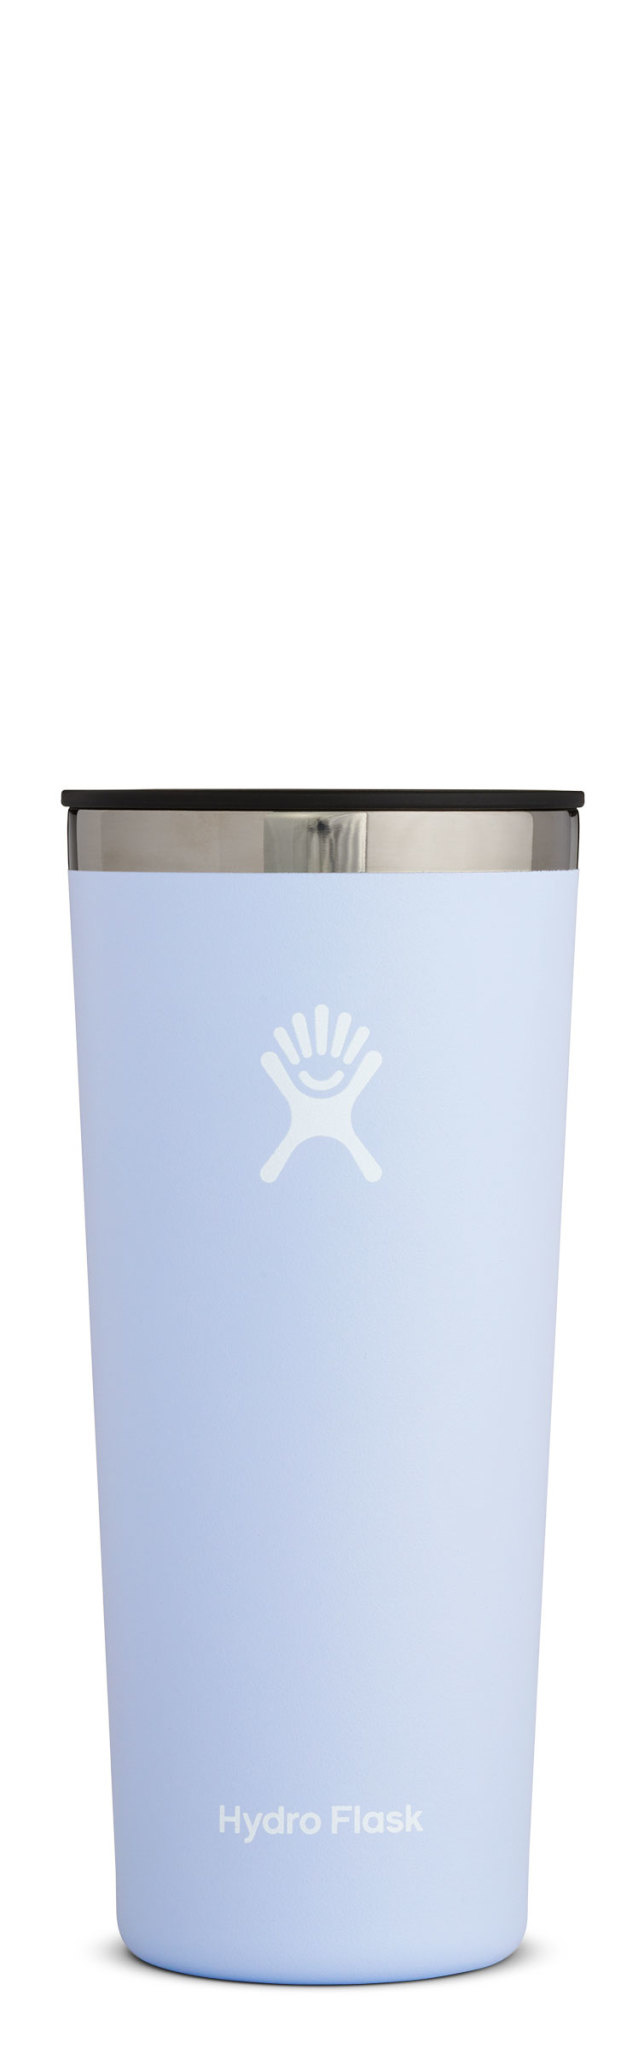 Hydro Flask 22oz Tumbler-3